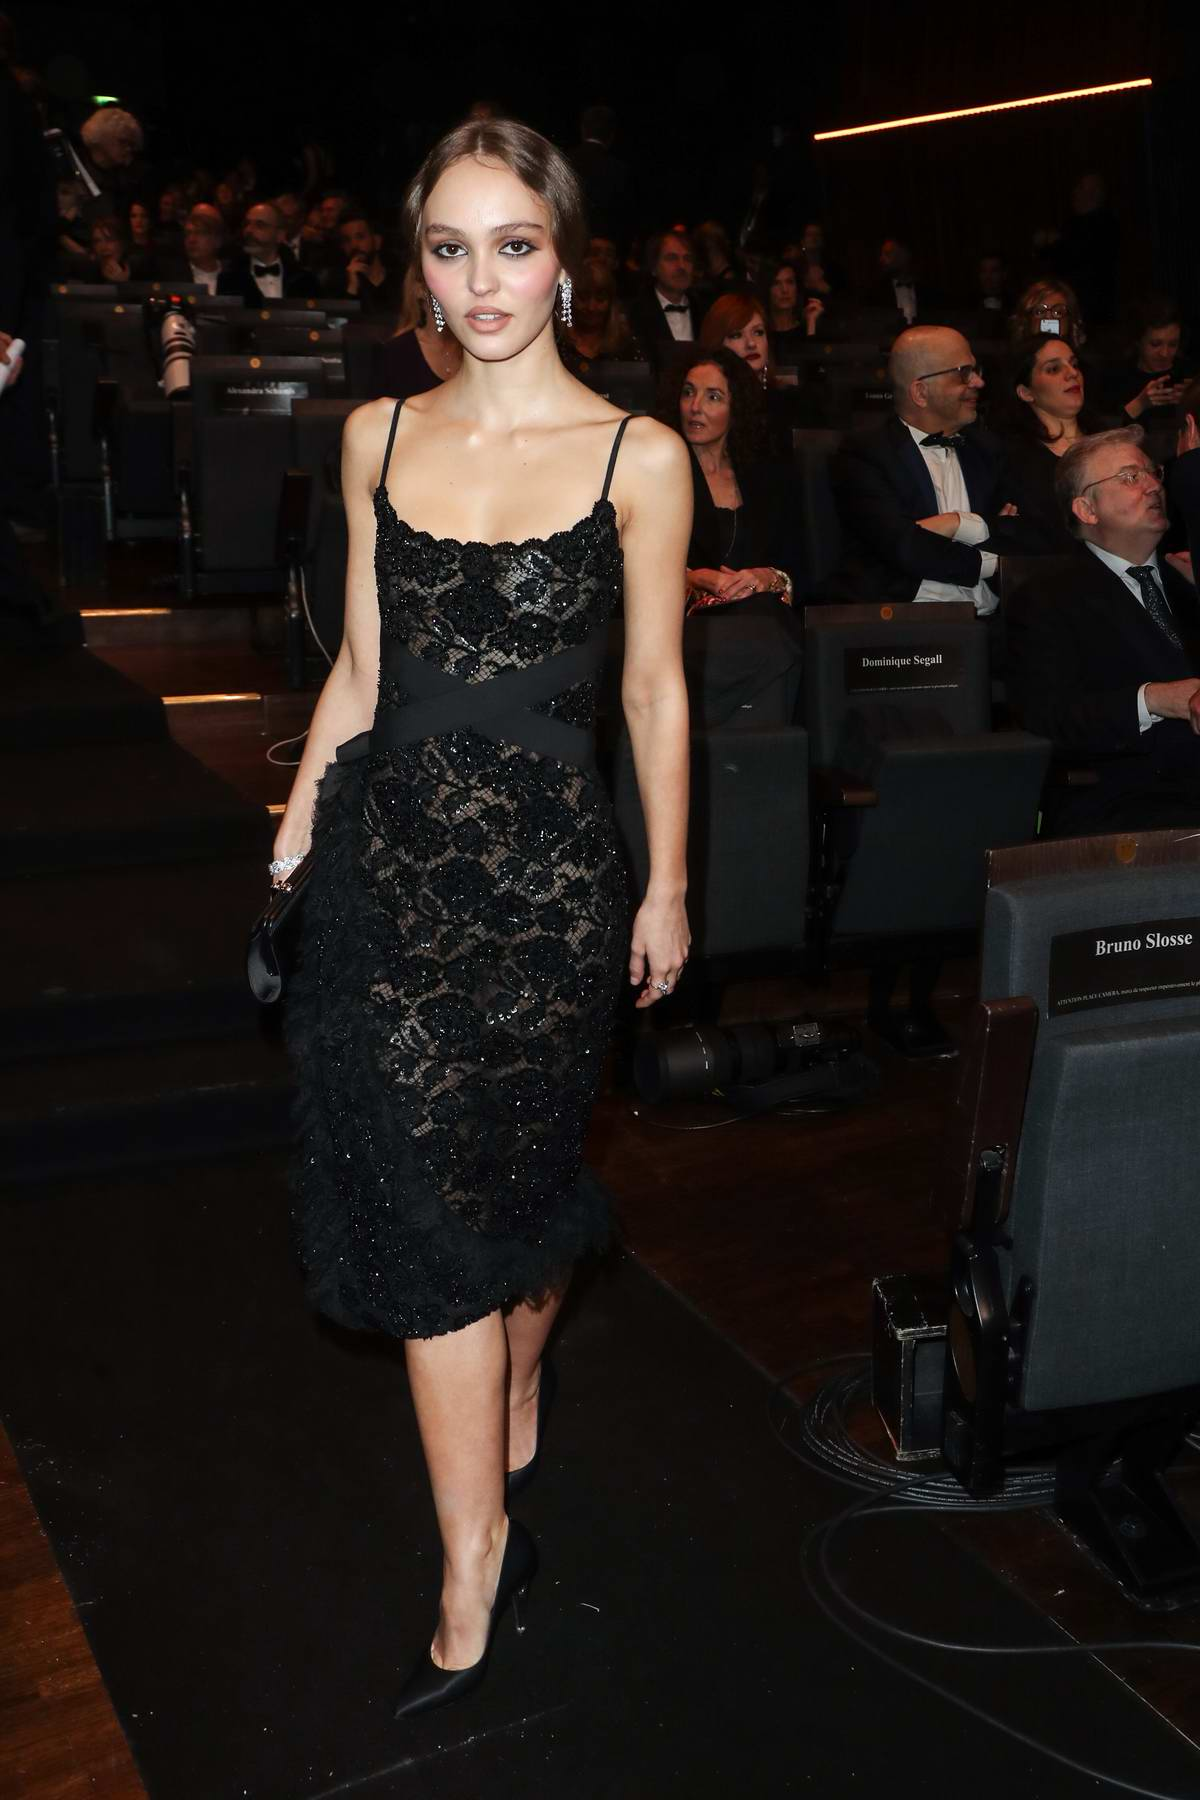 Lily-Rose Depp attends the 44th Cesar Film Awards ceremony held at the Salle Pleyel in Paris, France